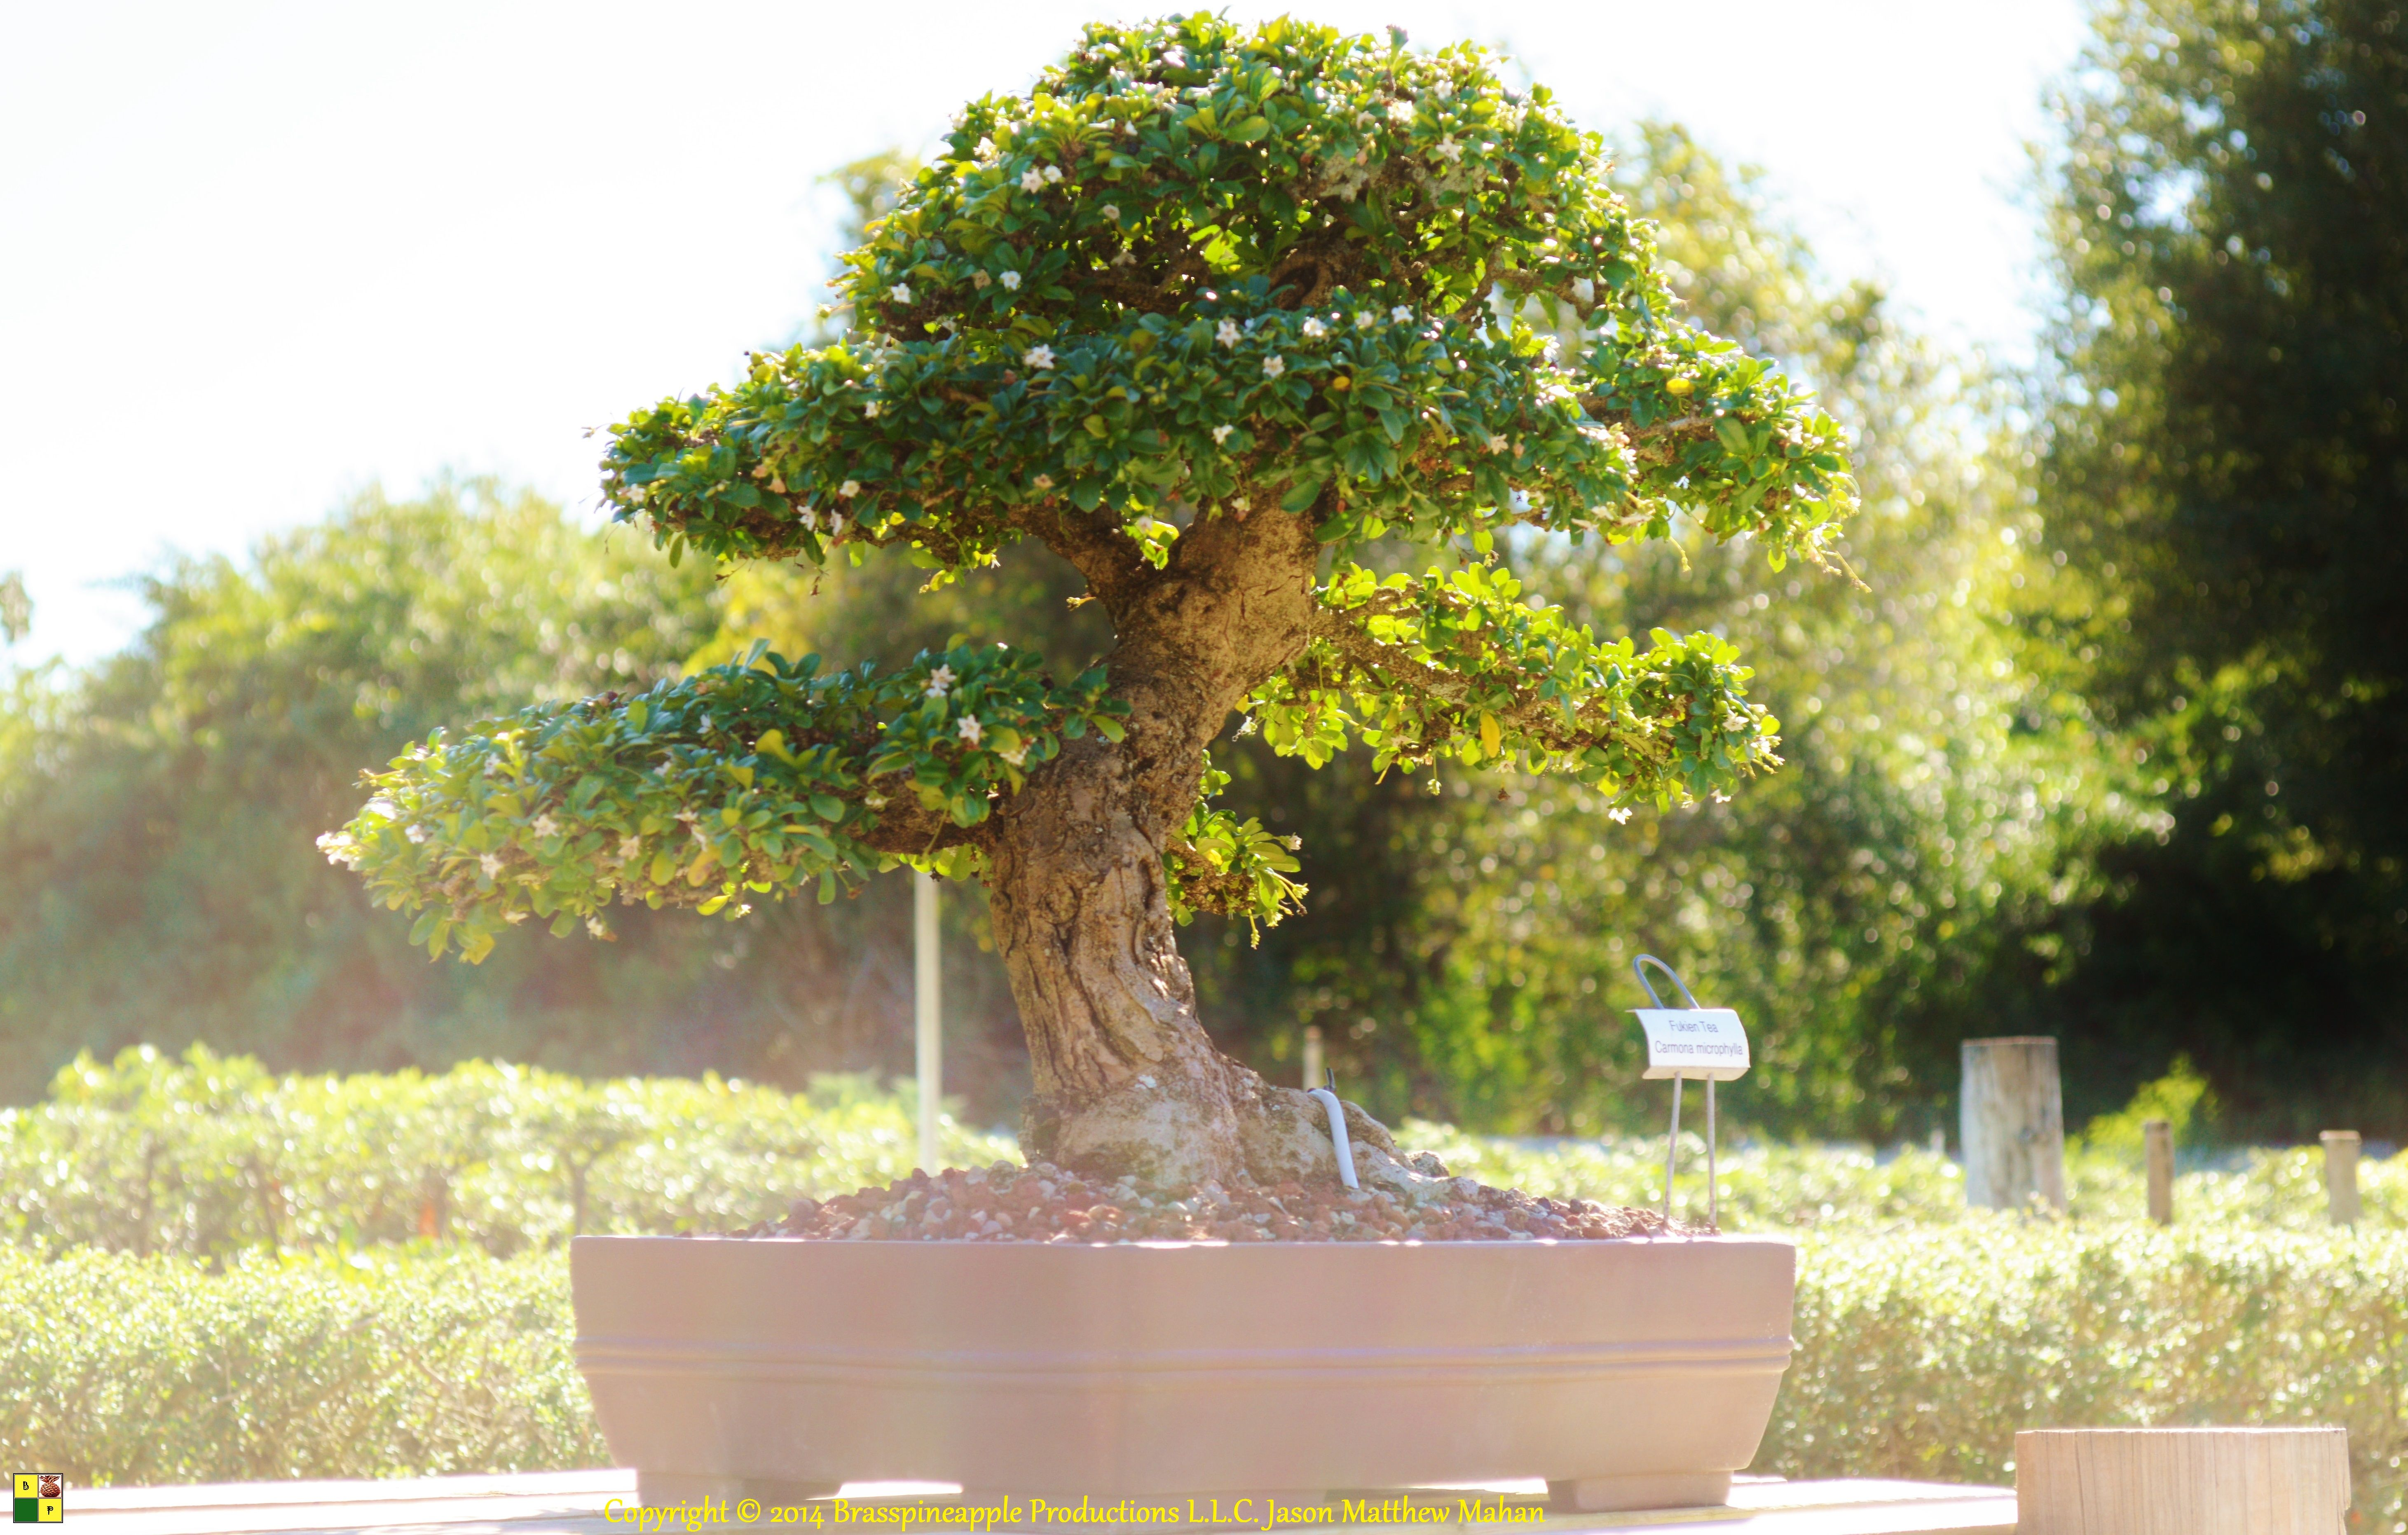 Ien Tea Bonsai Tree Wigerts Nursery North Fort Myers Florida U S A